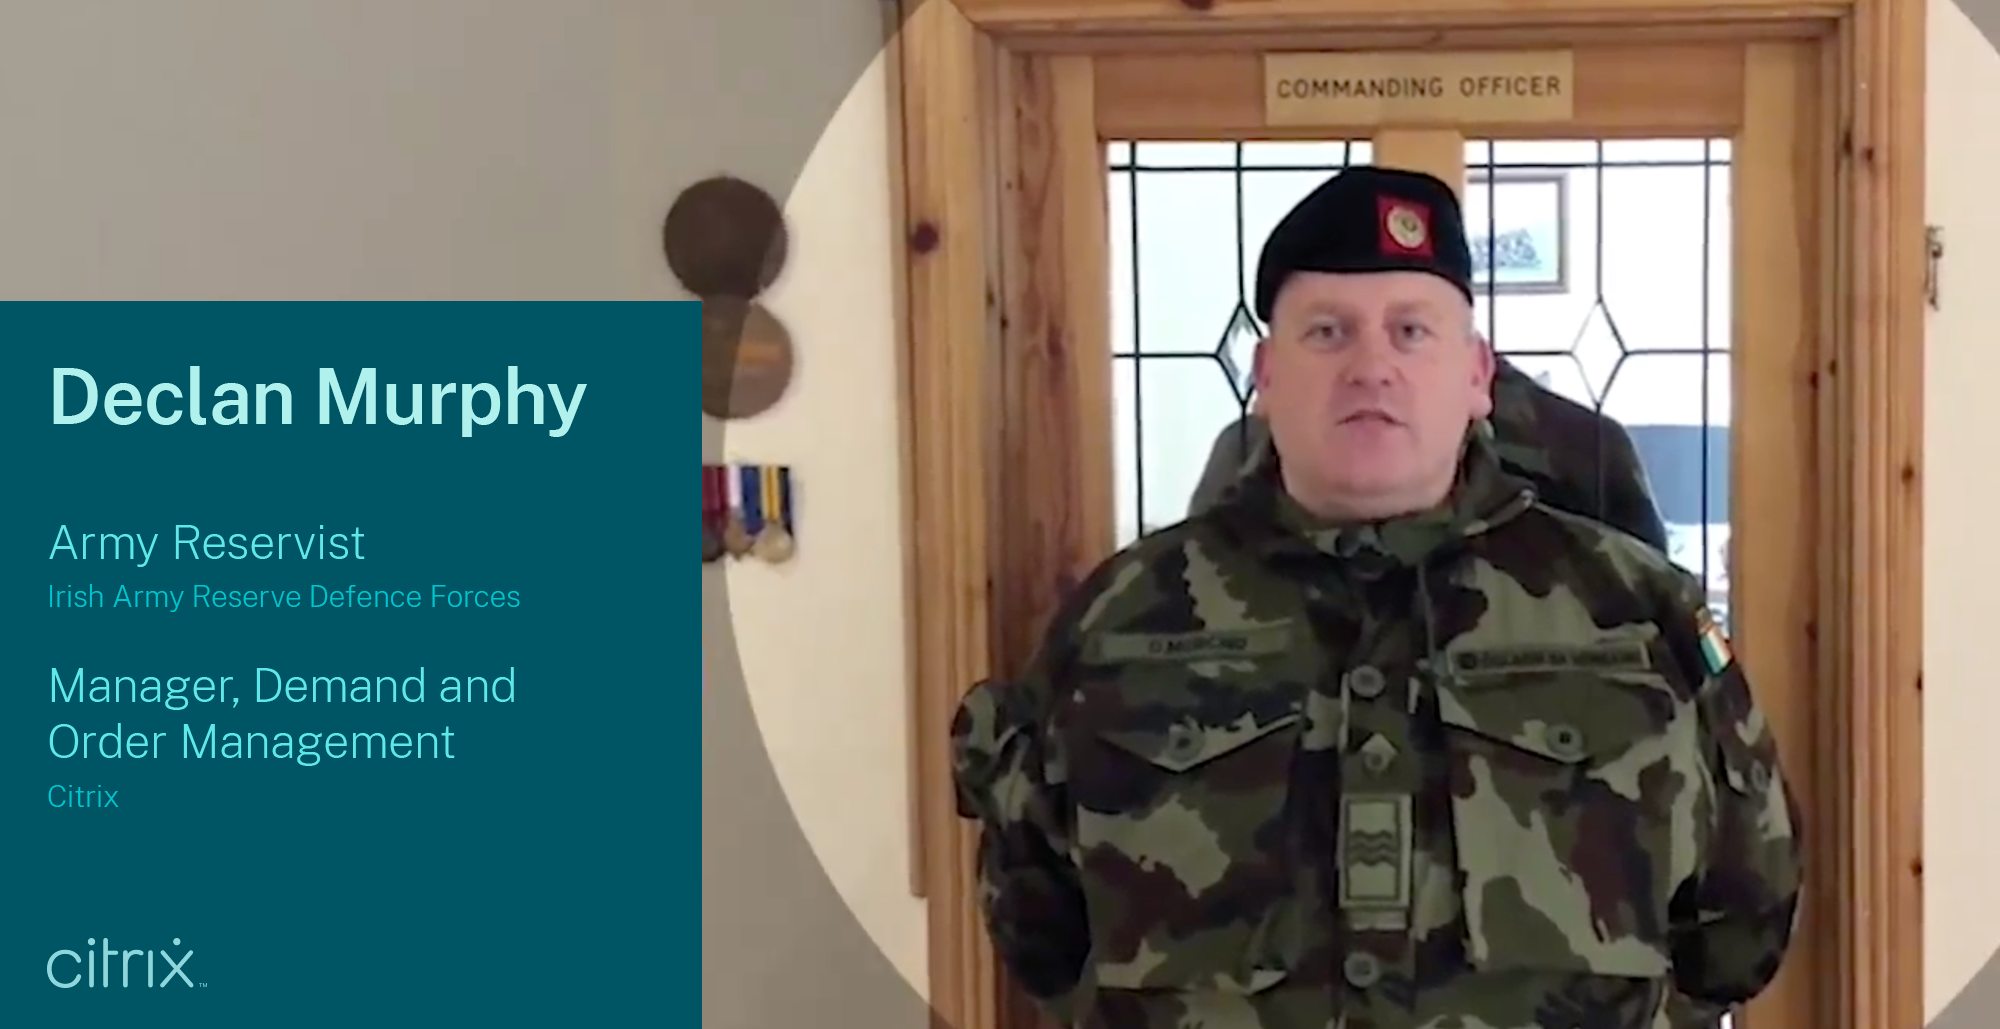 Declan Murphy, Soldier in the Reserve Defense Forces in Ireland